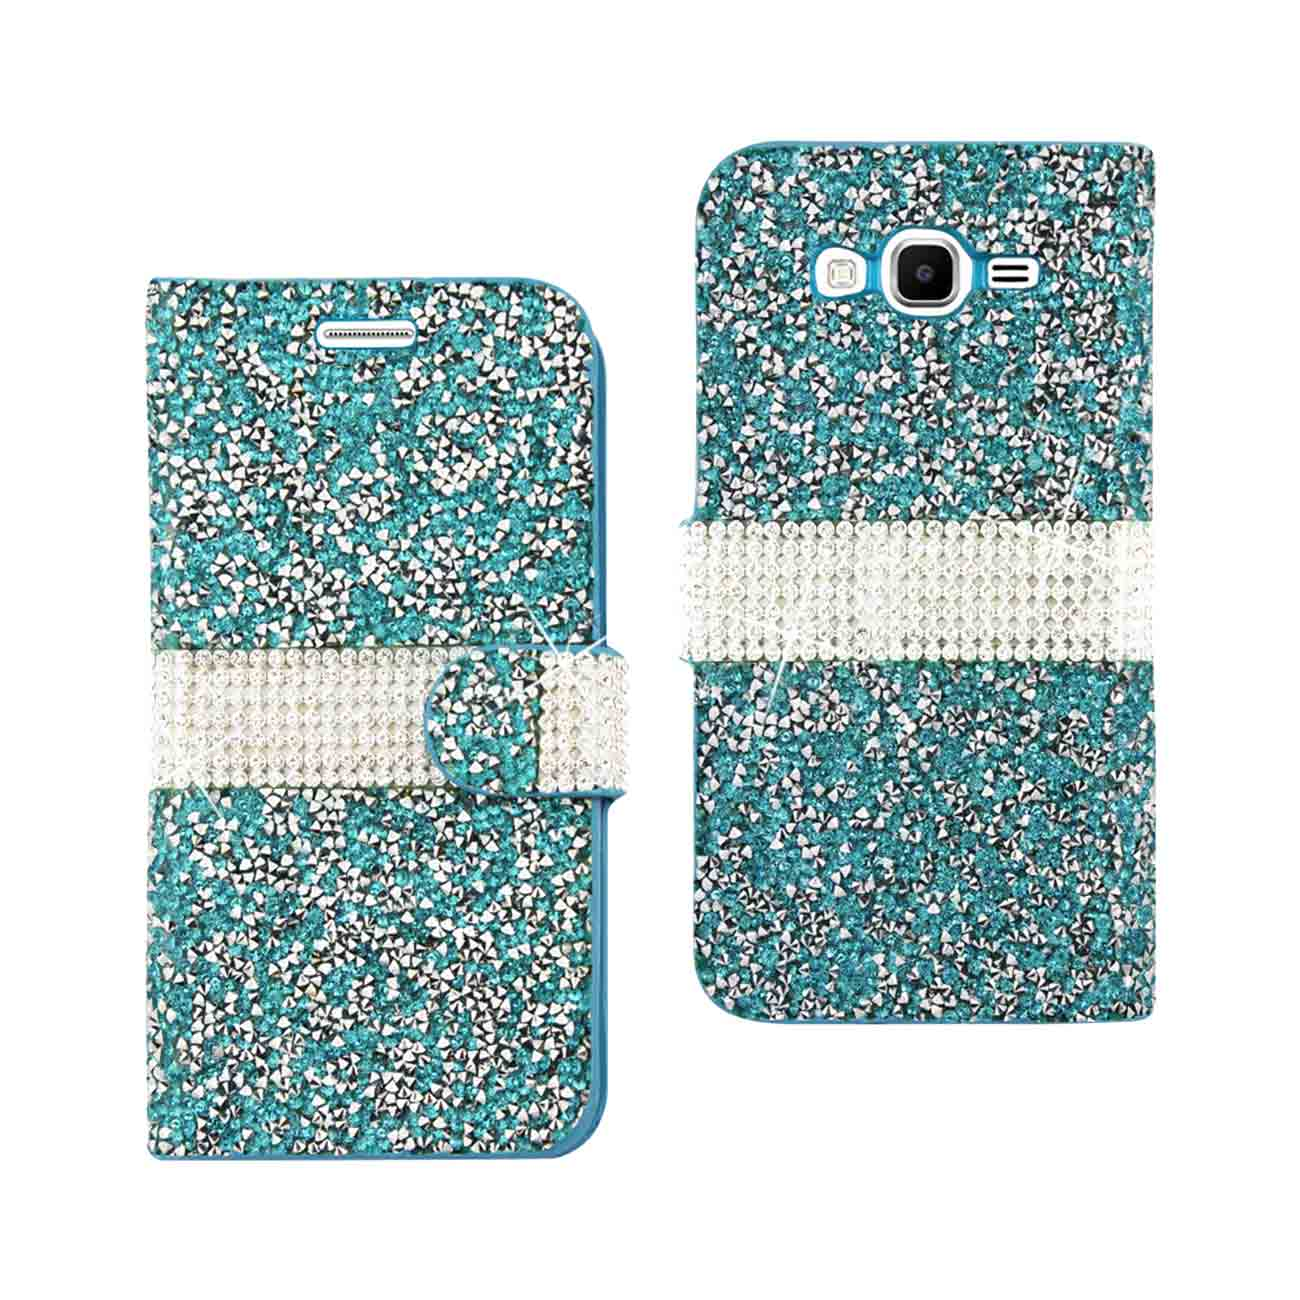 SAMSUNG GALAXY GRAND PRIME JEWELRY RHINESTONE WALLET CASE IN BLUE